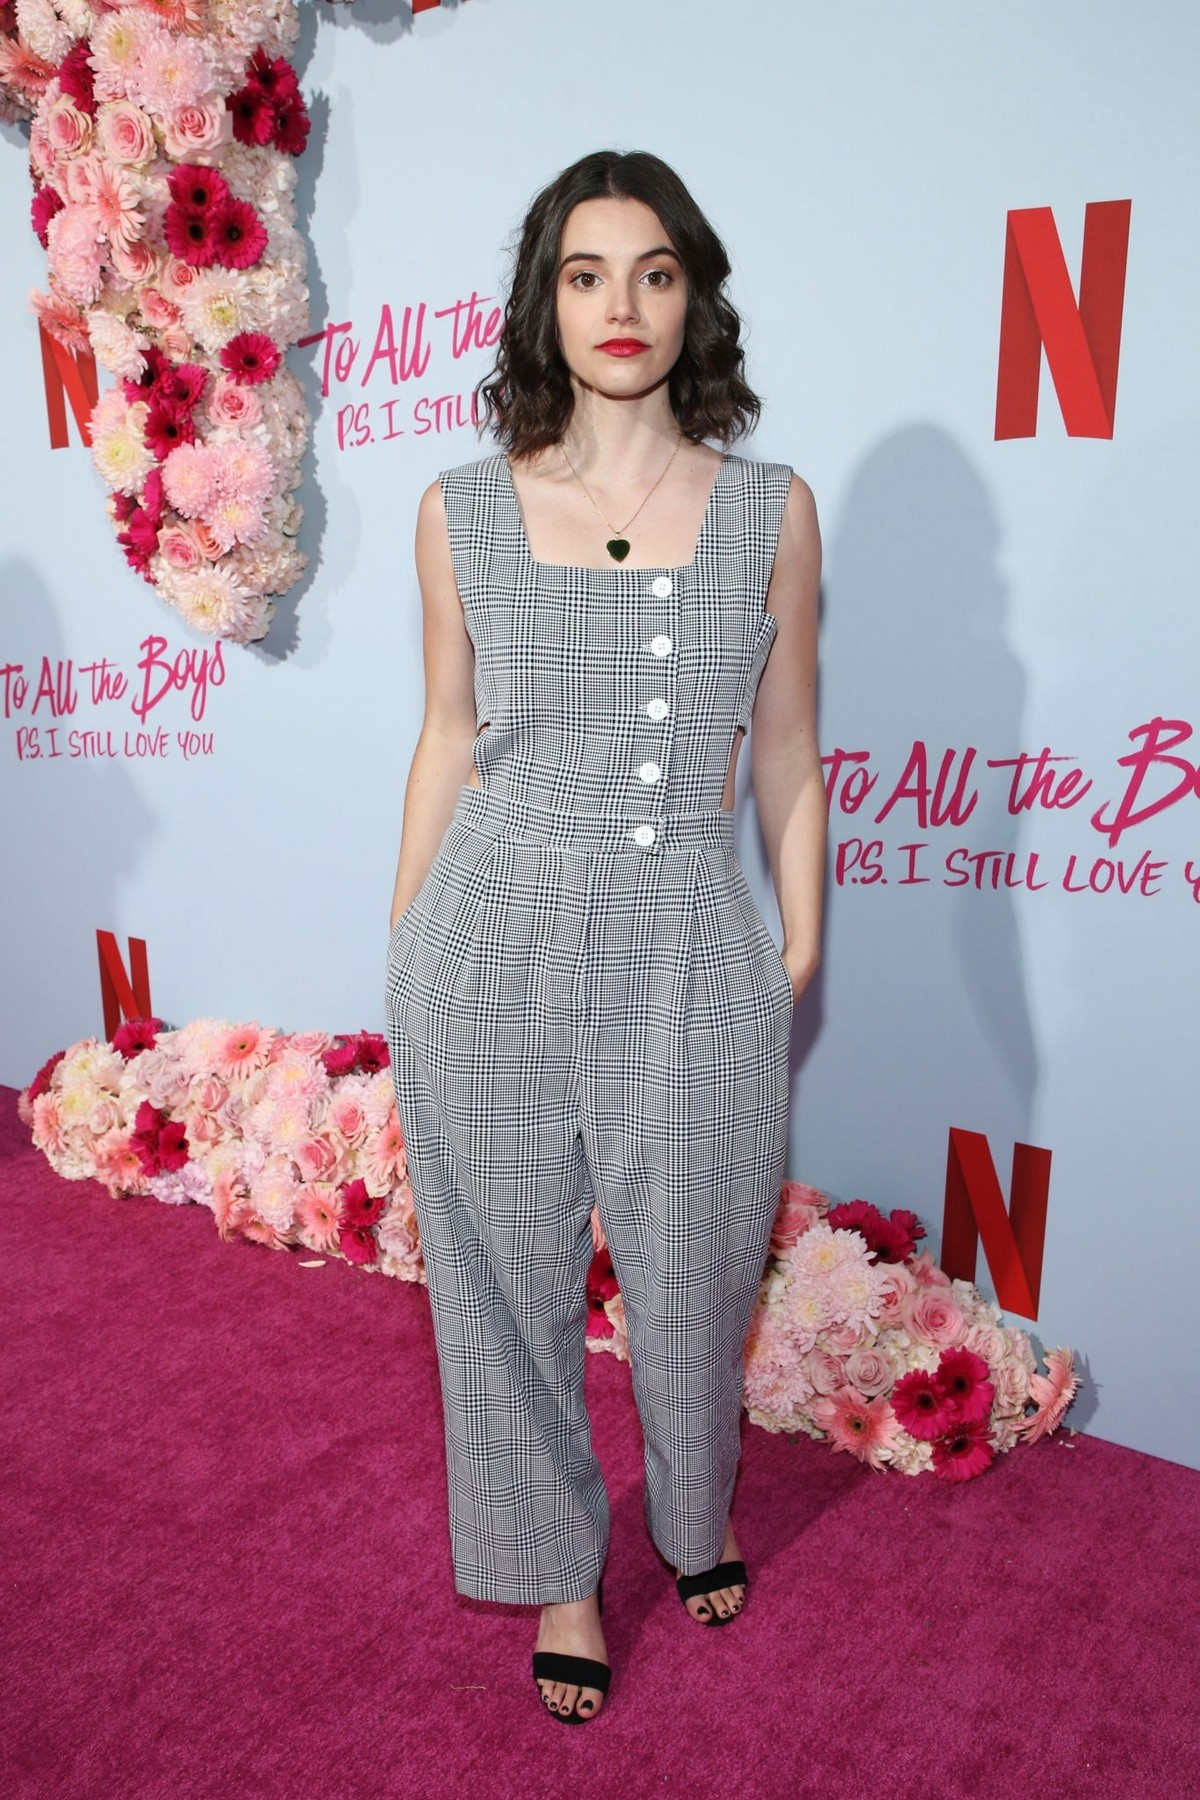 Francesca Reale attends Premiere of Netflixs To All The